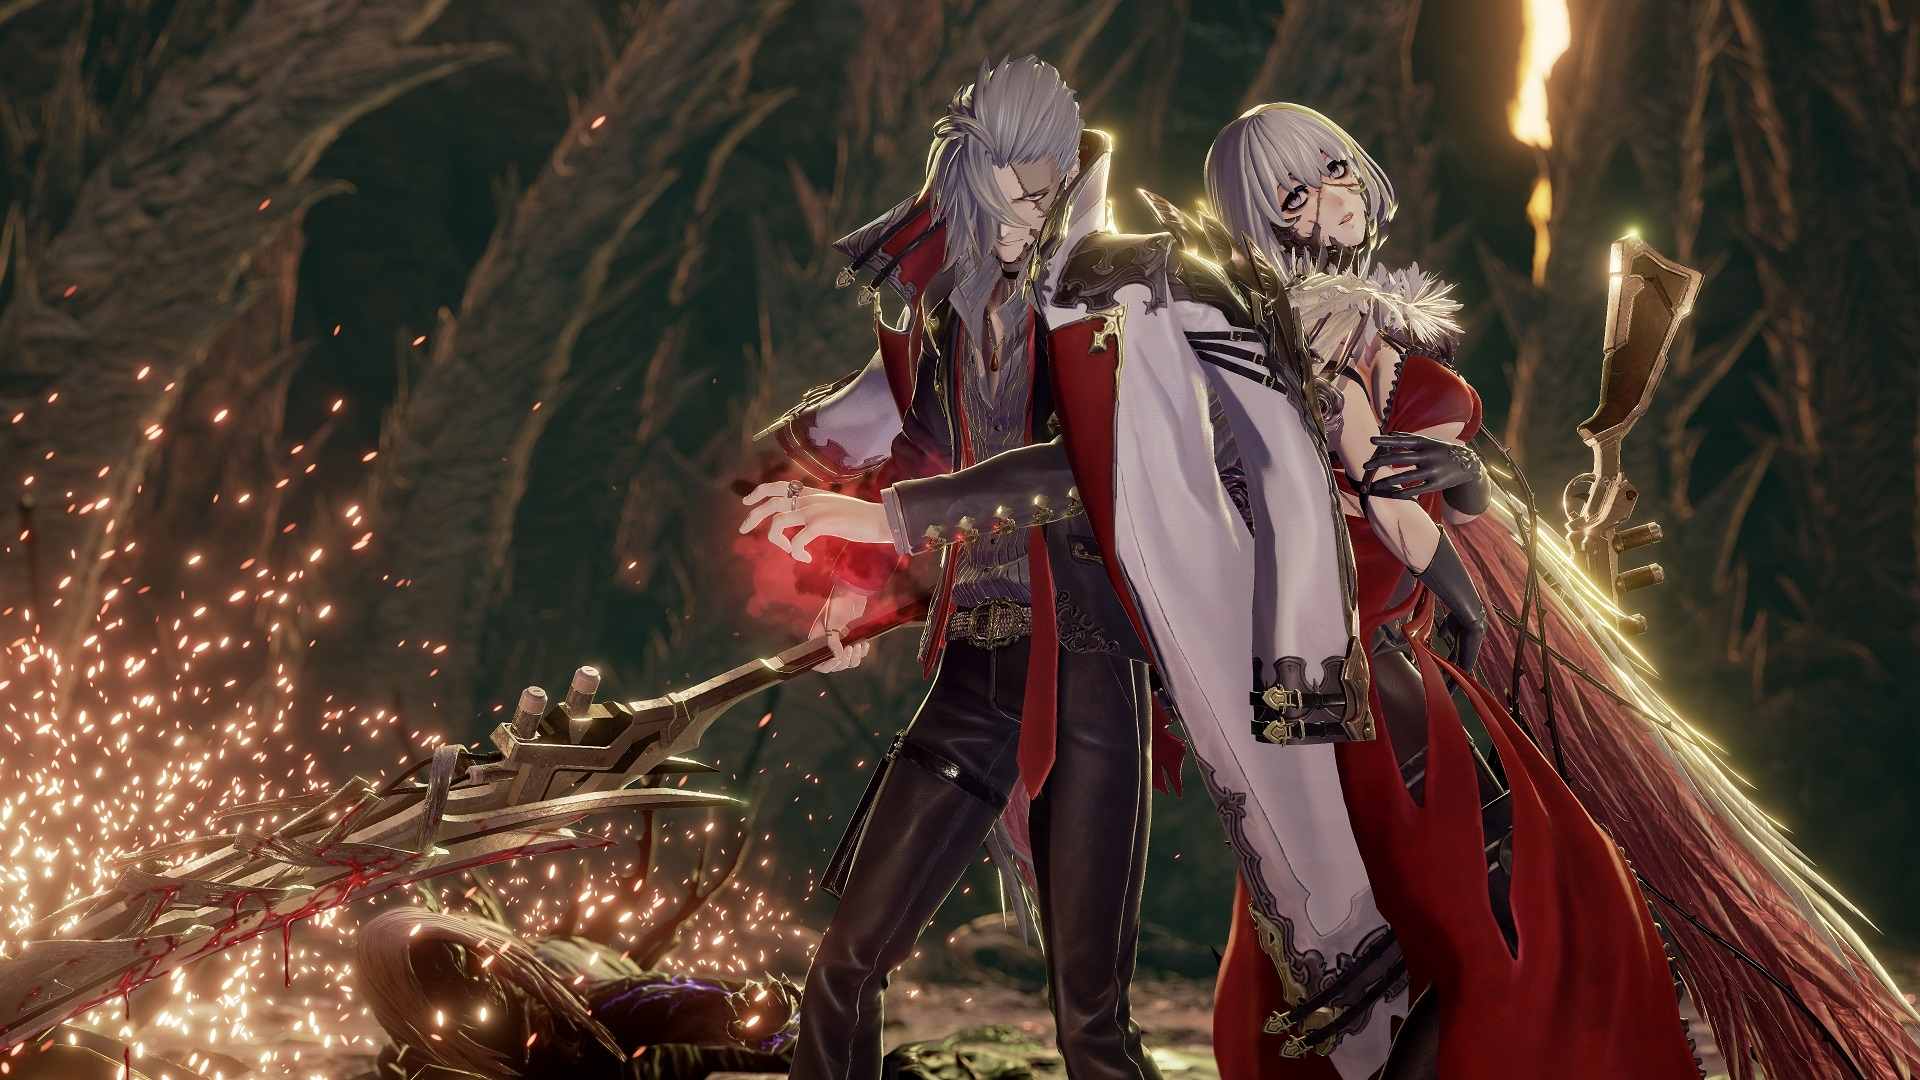 Code Vein Gets Details on New Characters and Weapons